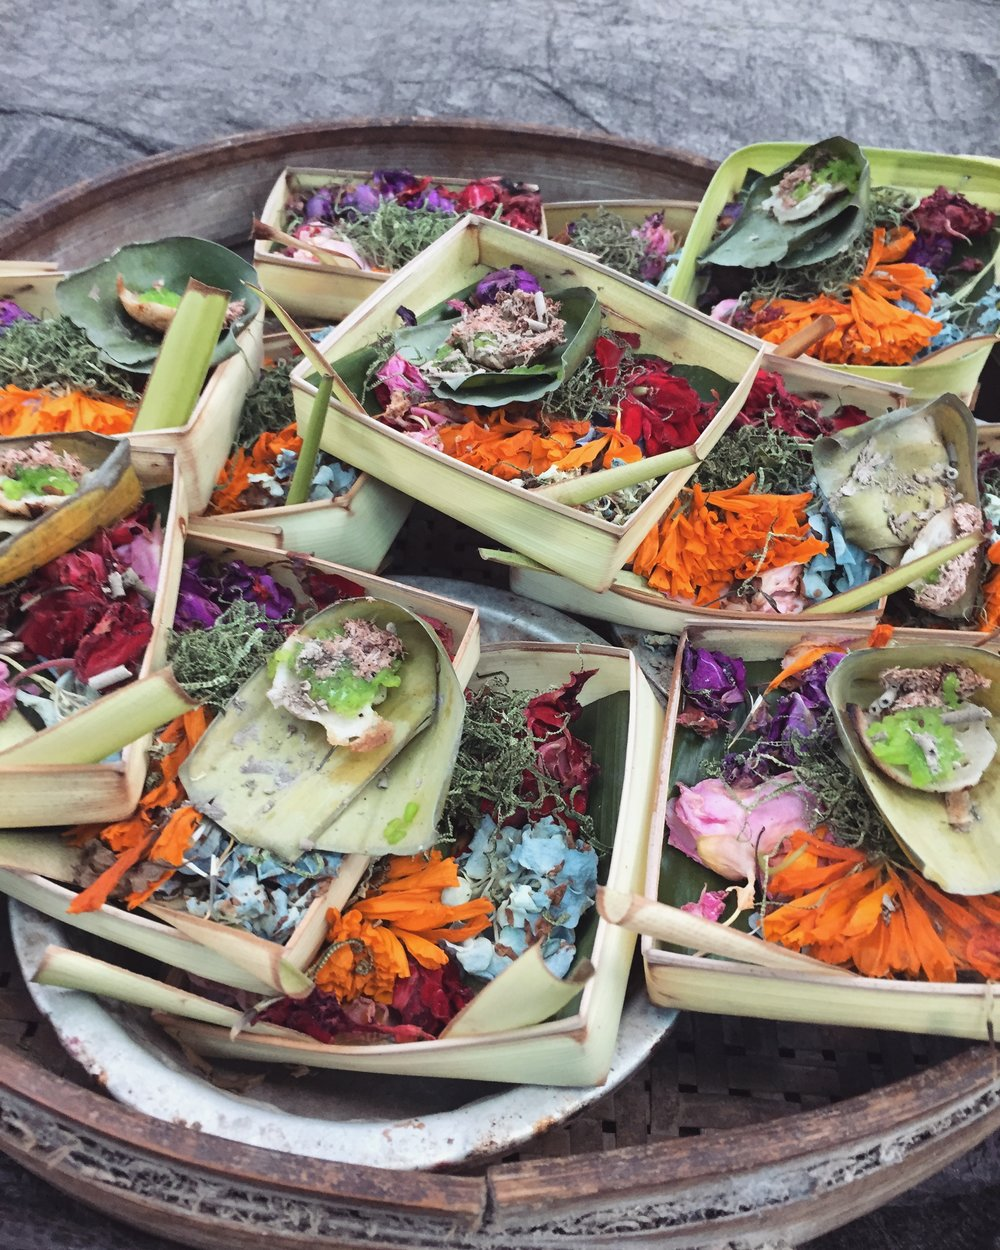 Food offerings EAT.PRAY.MOVE Yoga Retreats | Bali, Indonesia